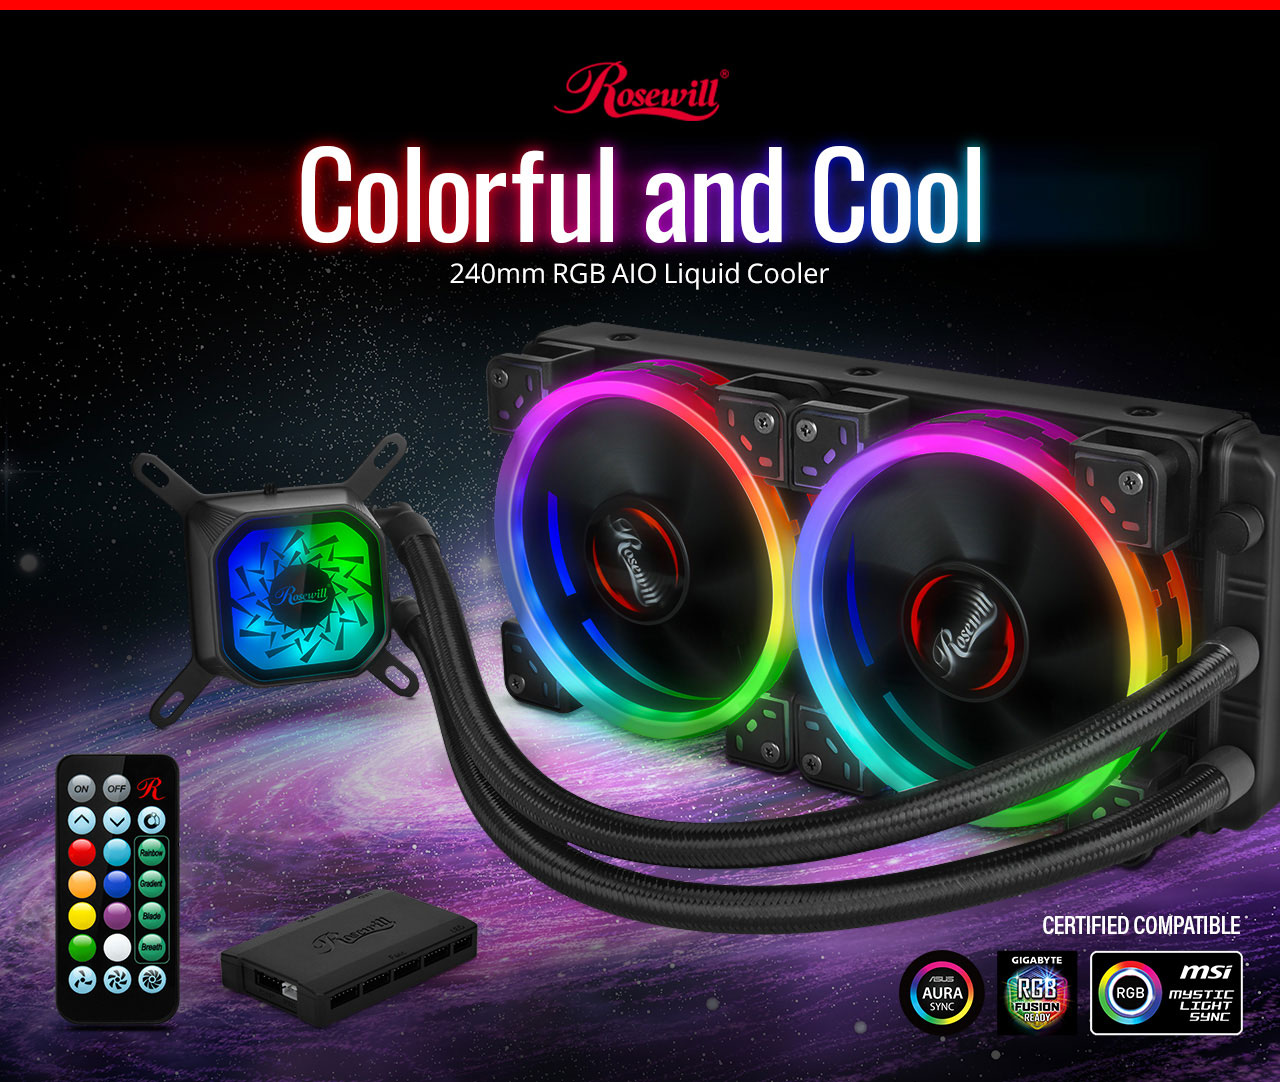 Rosewill PB240-RGB 240mm RGB AIO Liquid Cooler floating in space next to its remote, USB dock, badges for ASUS AURA SYNC, GIGABYTE RGB FUSION and MYSTIC LIGHT SYNC. Above the product is text that reads: Colorful and Cool